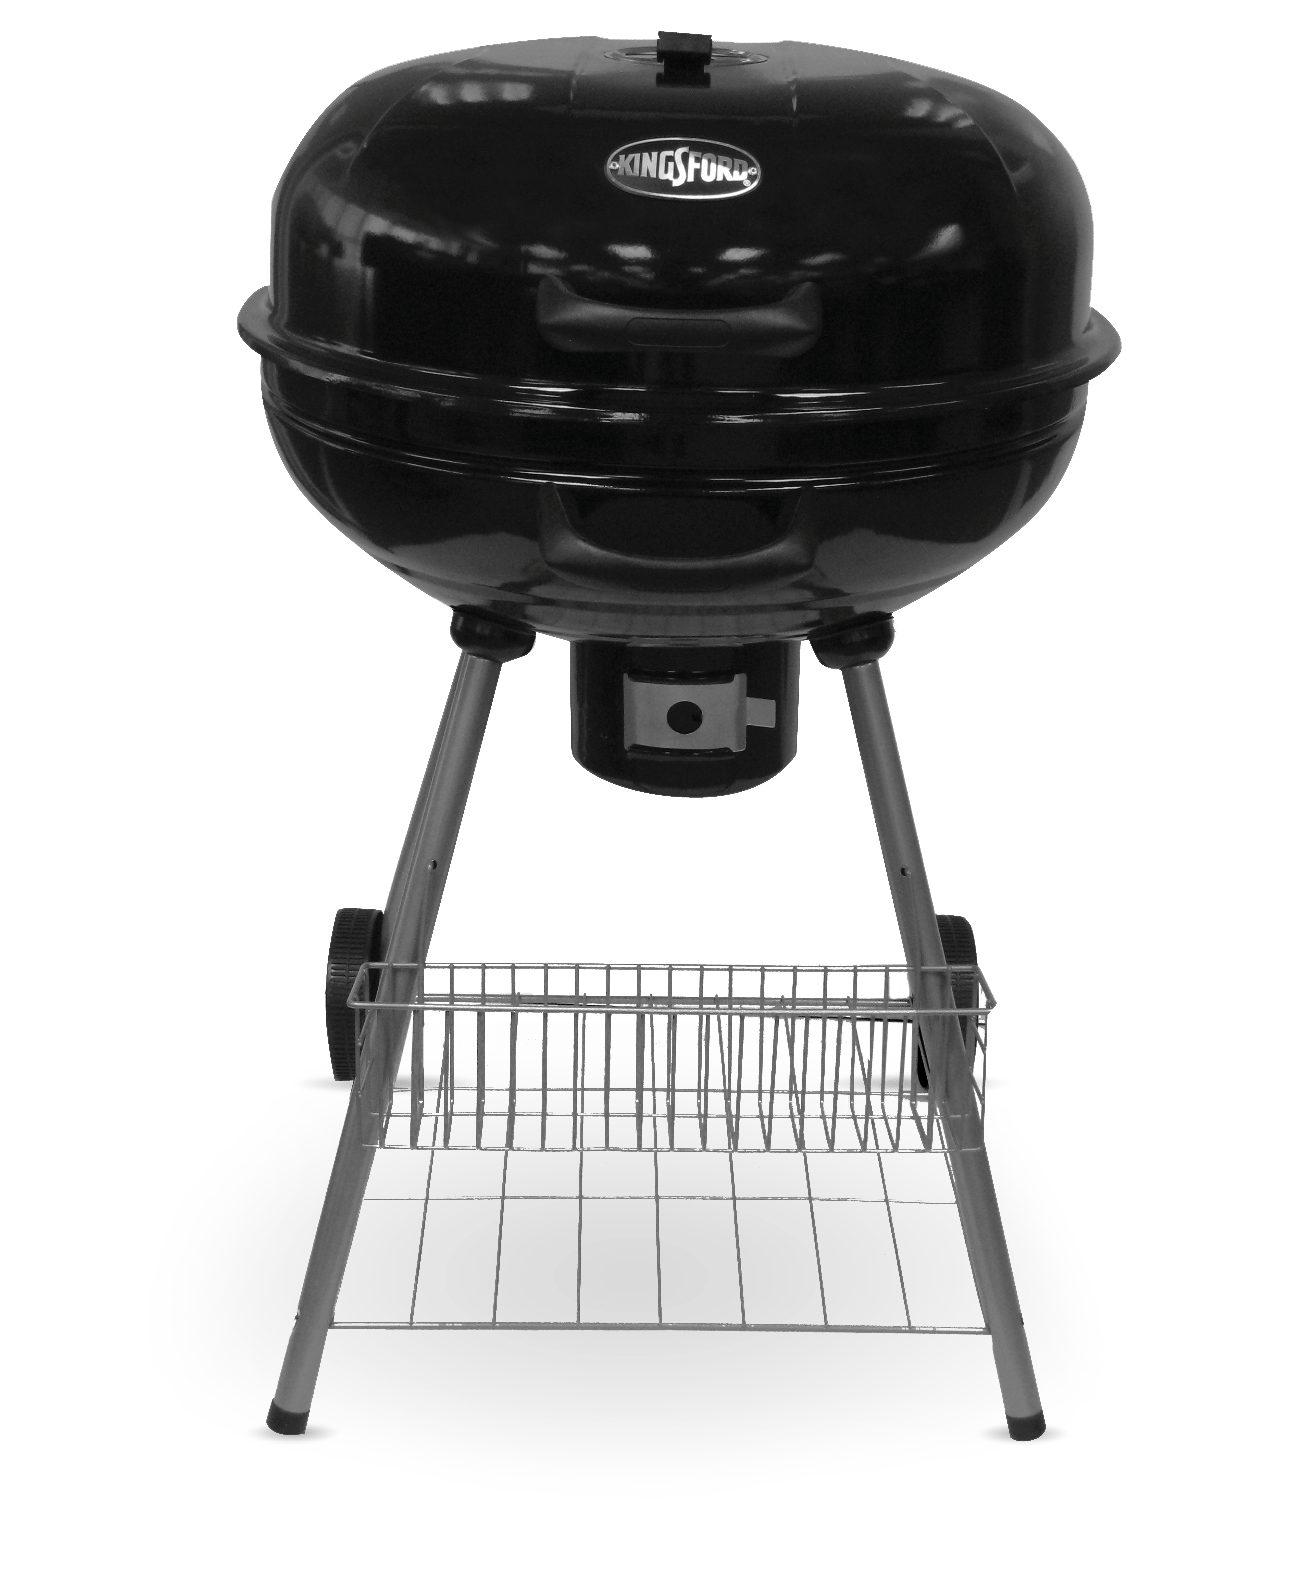 Kingsford<sup>®</sup> Charcoal Grills